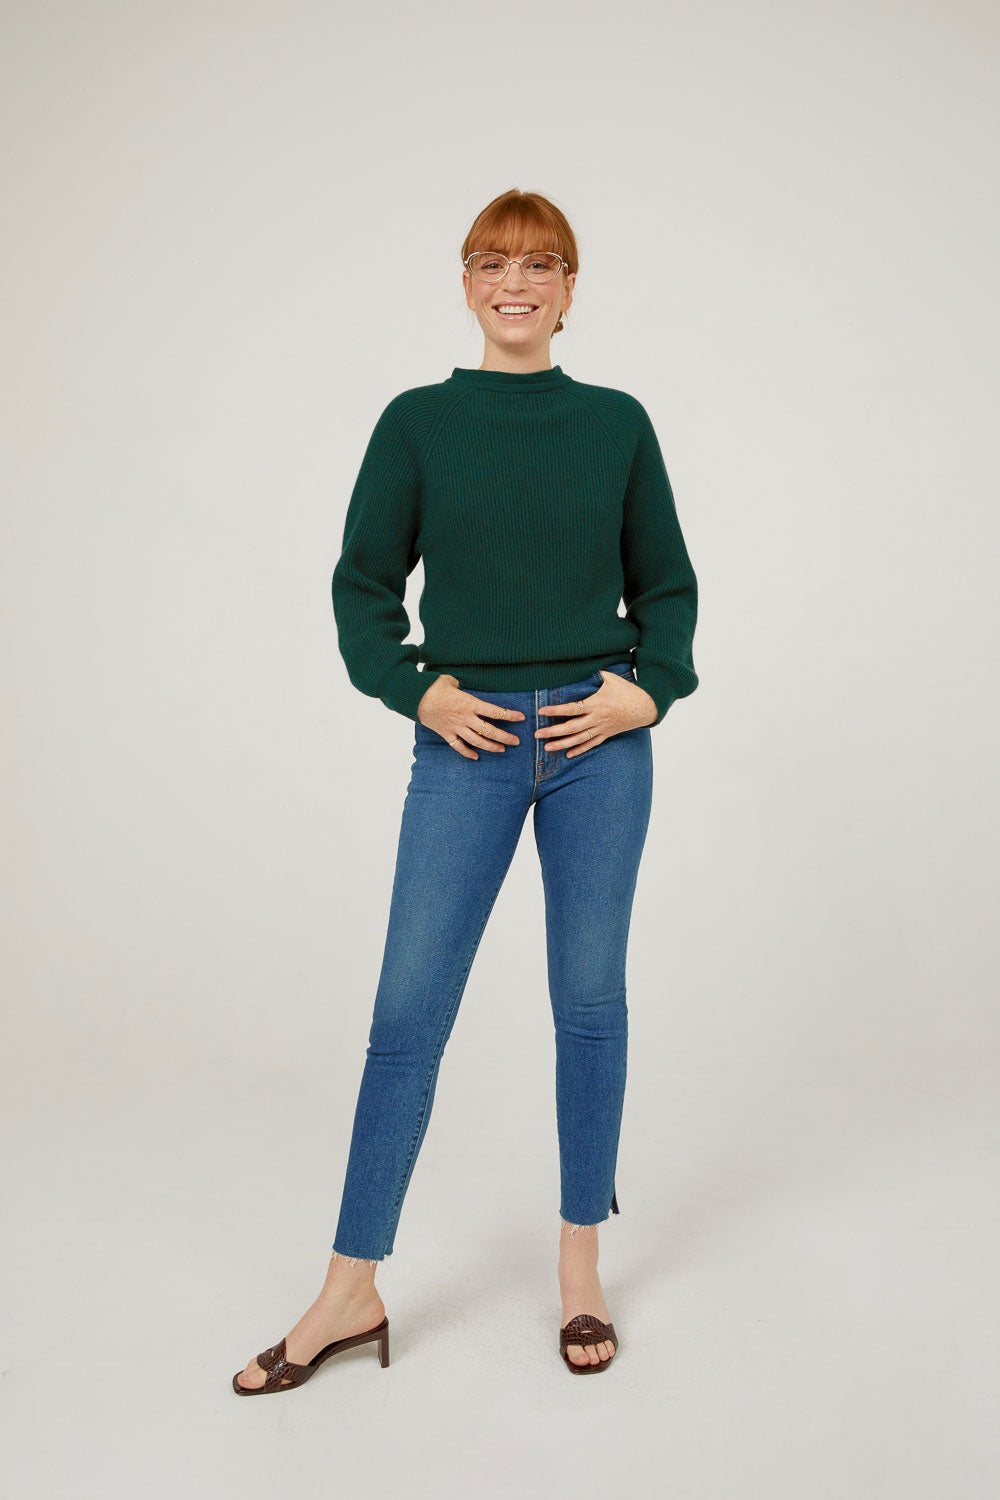 Evergreen cashmere mock neck pullover sweater with tie back full outfit styled with jeans